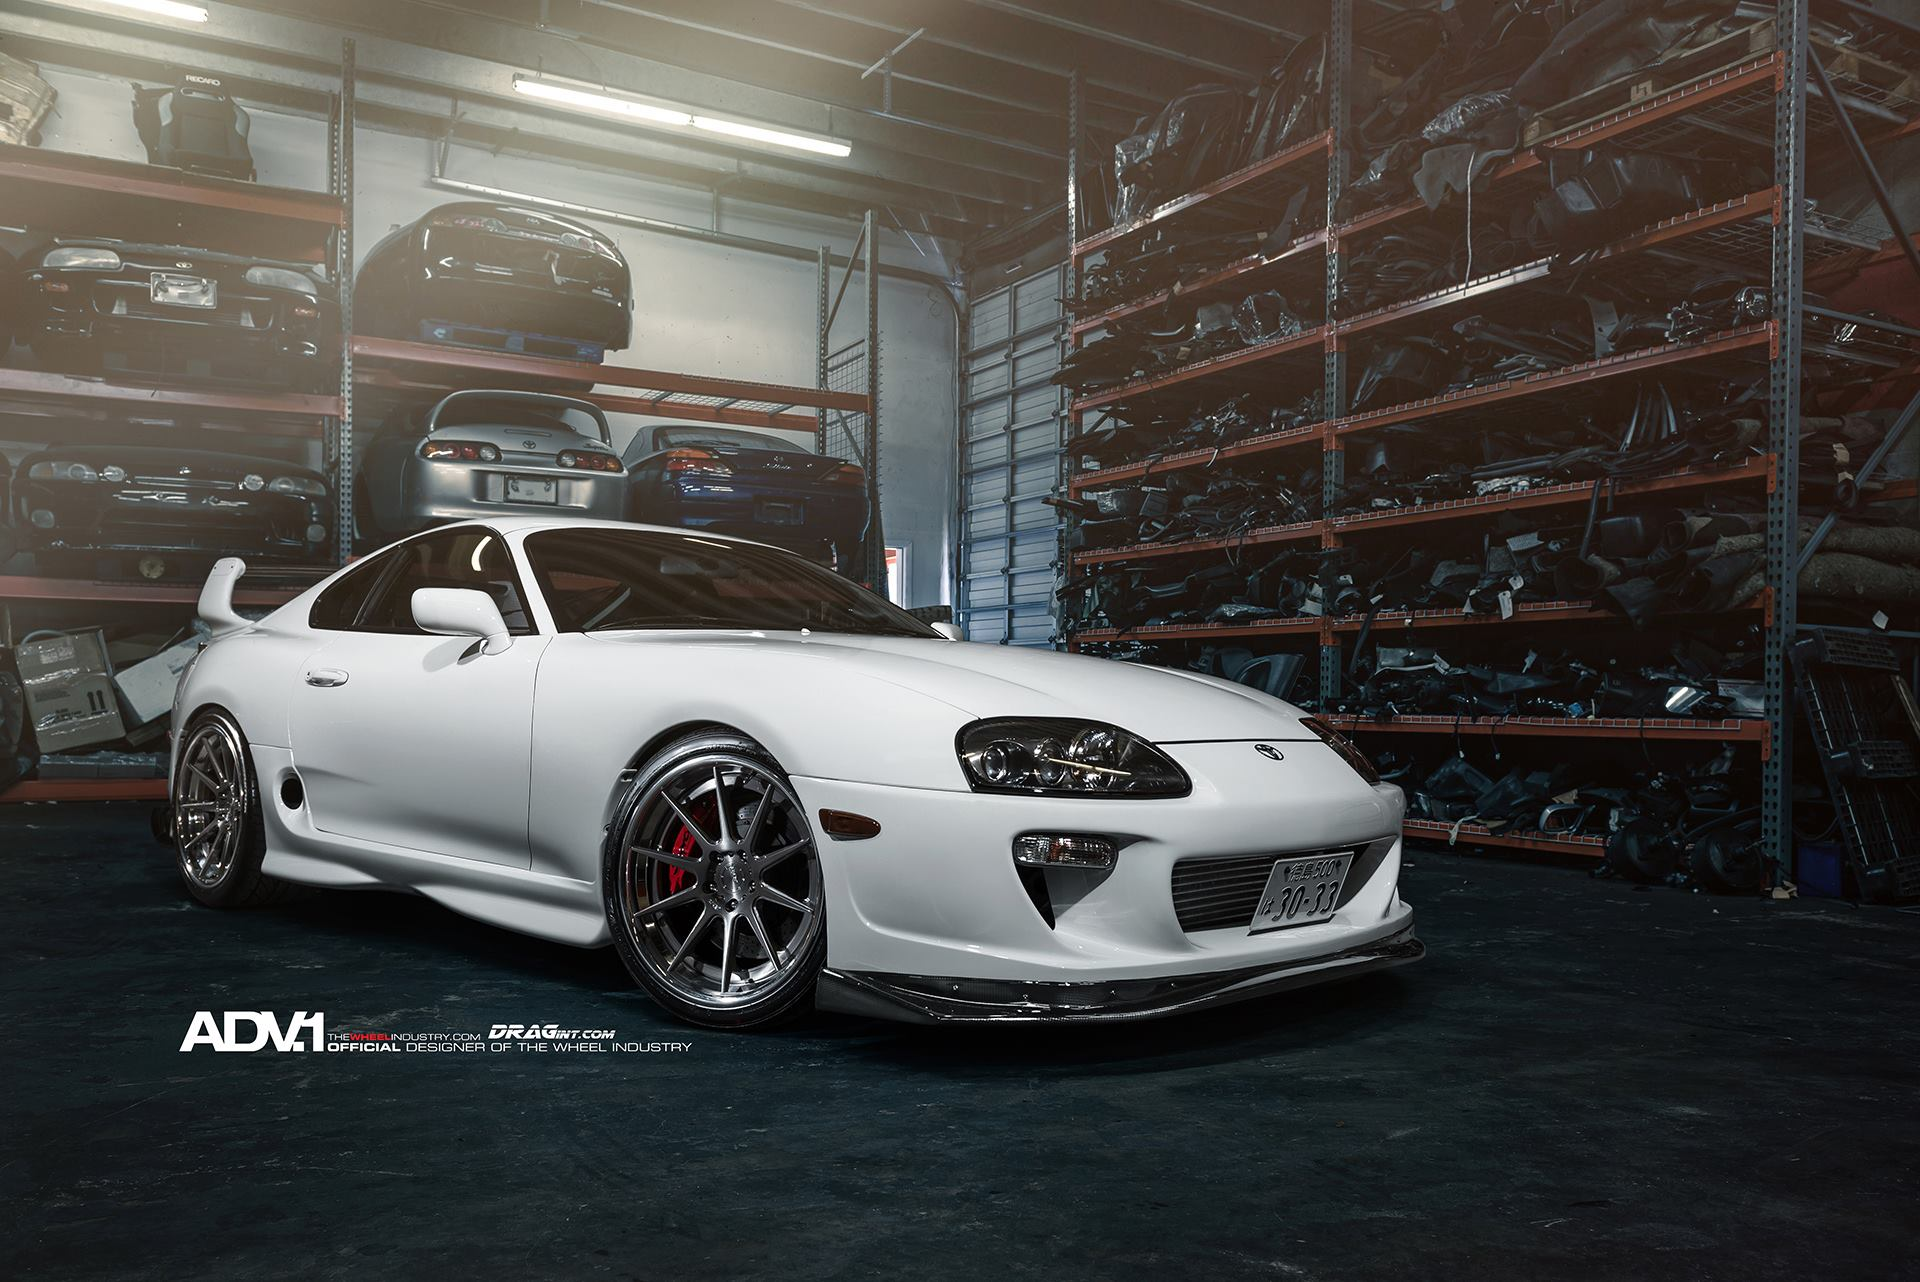 Best Car Wallpapers Ever Orange Peel Adv1 Wheels Features Our 1050 Hp Supra